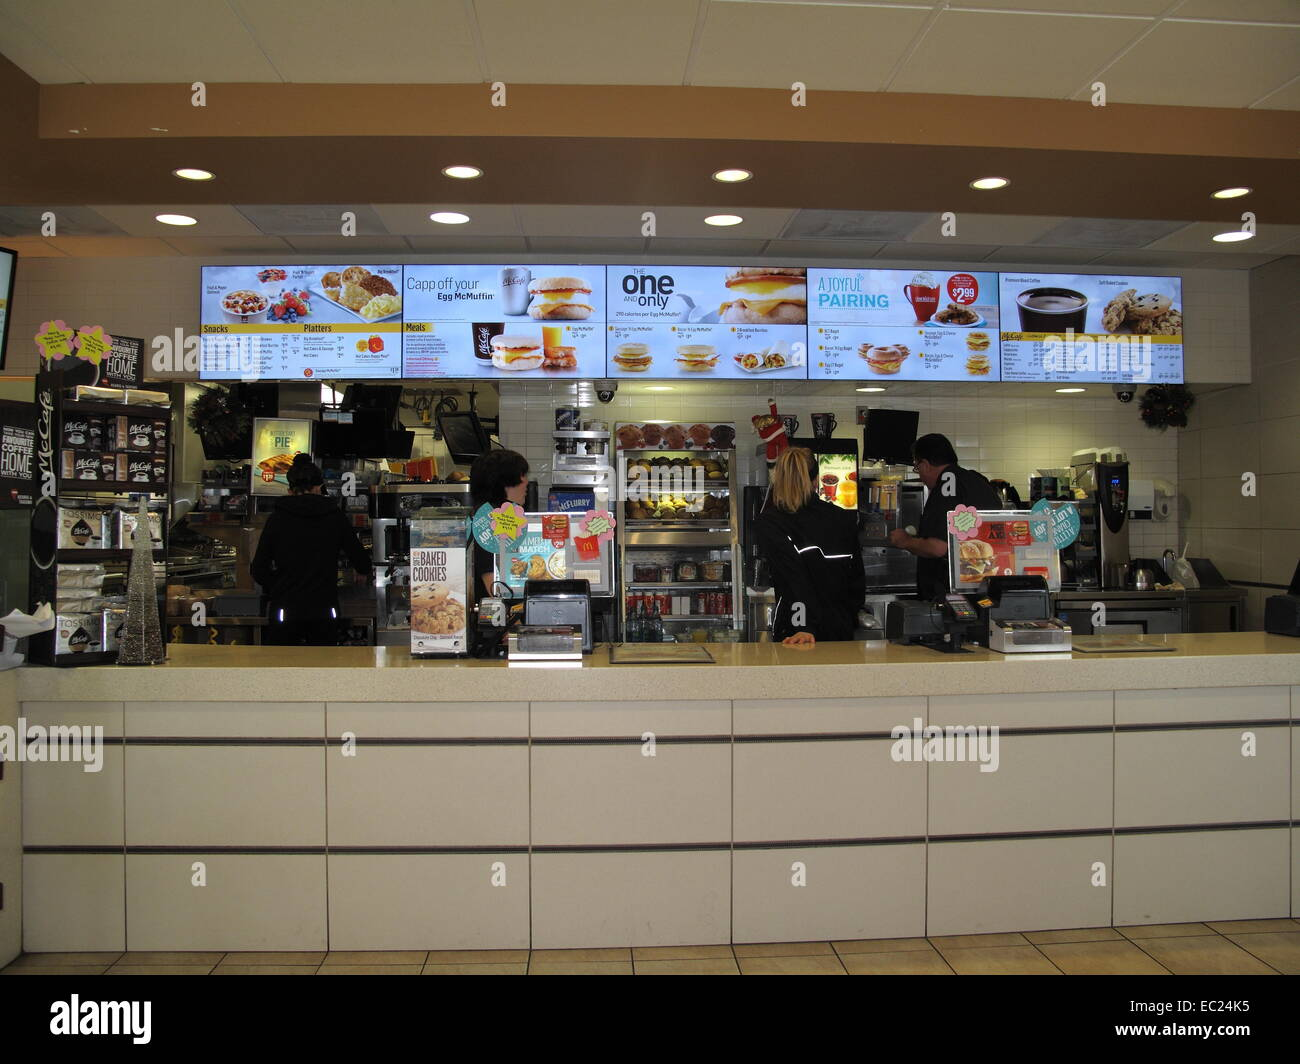 Largest Fast Food Chain